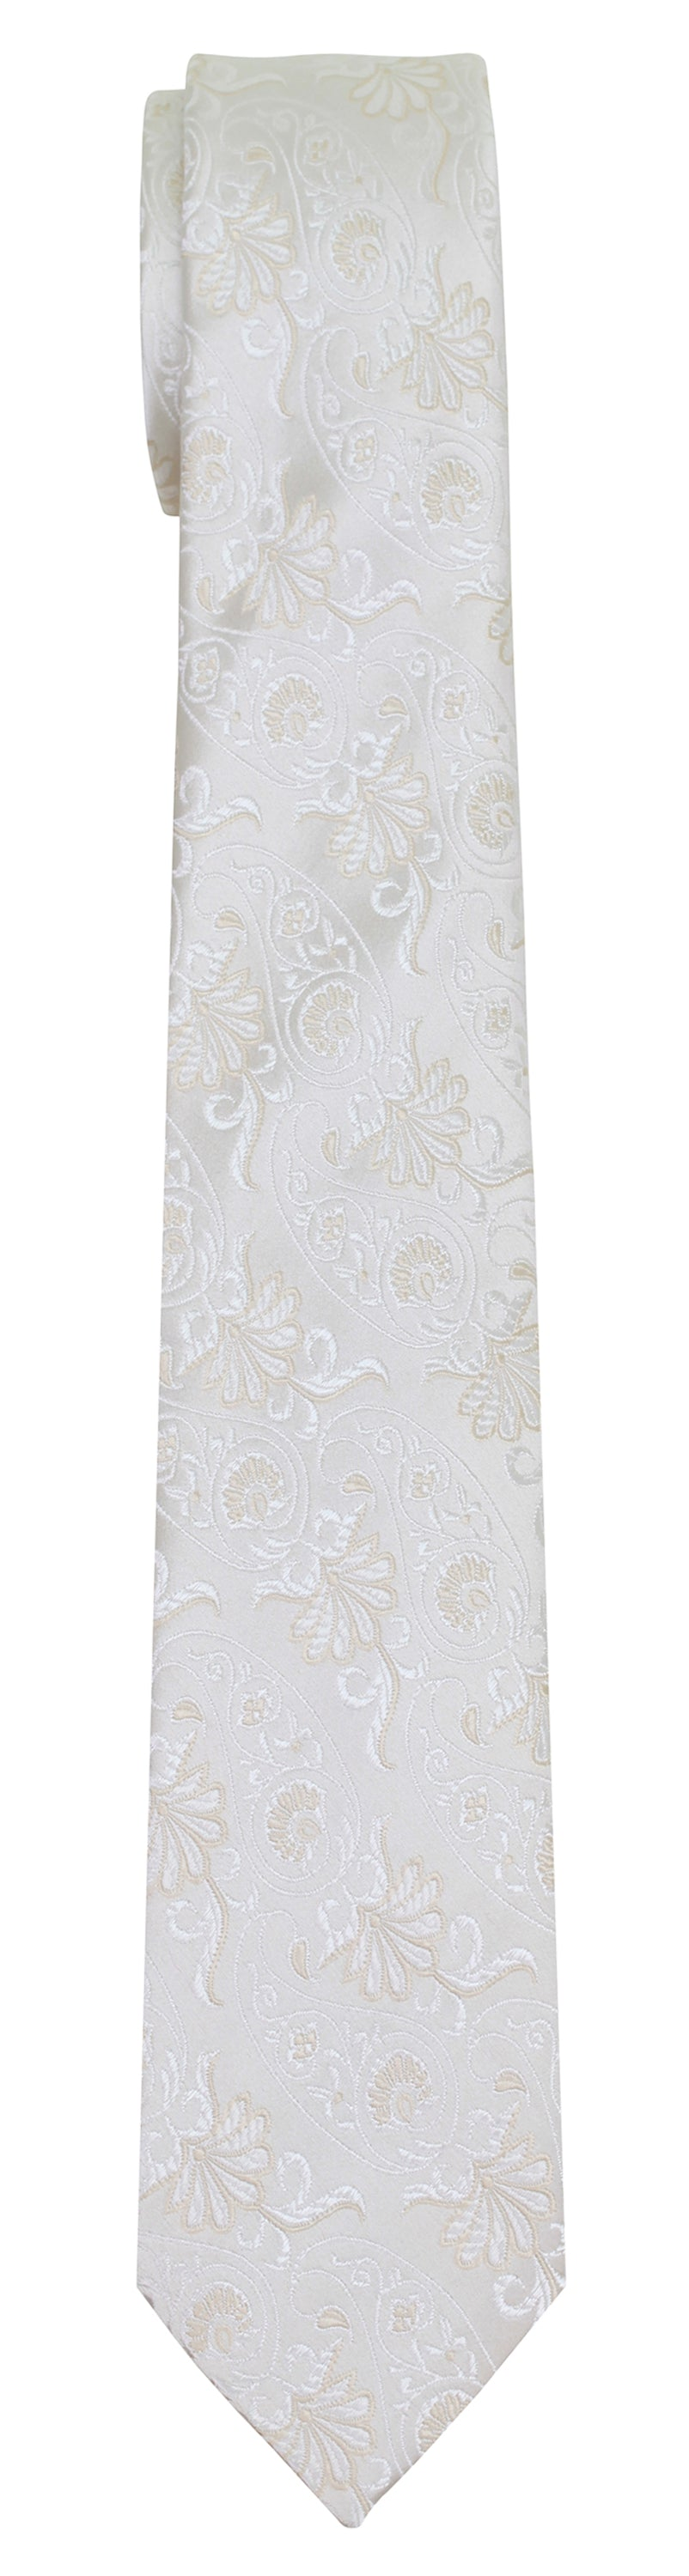 Mimi Fong Paisley Tie in White